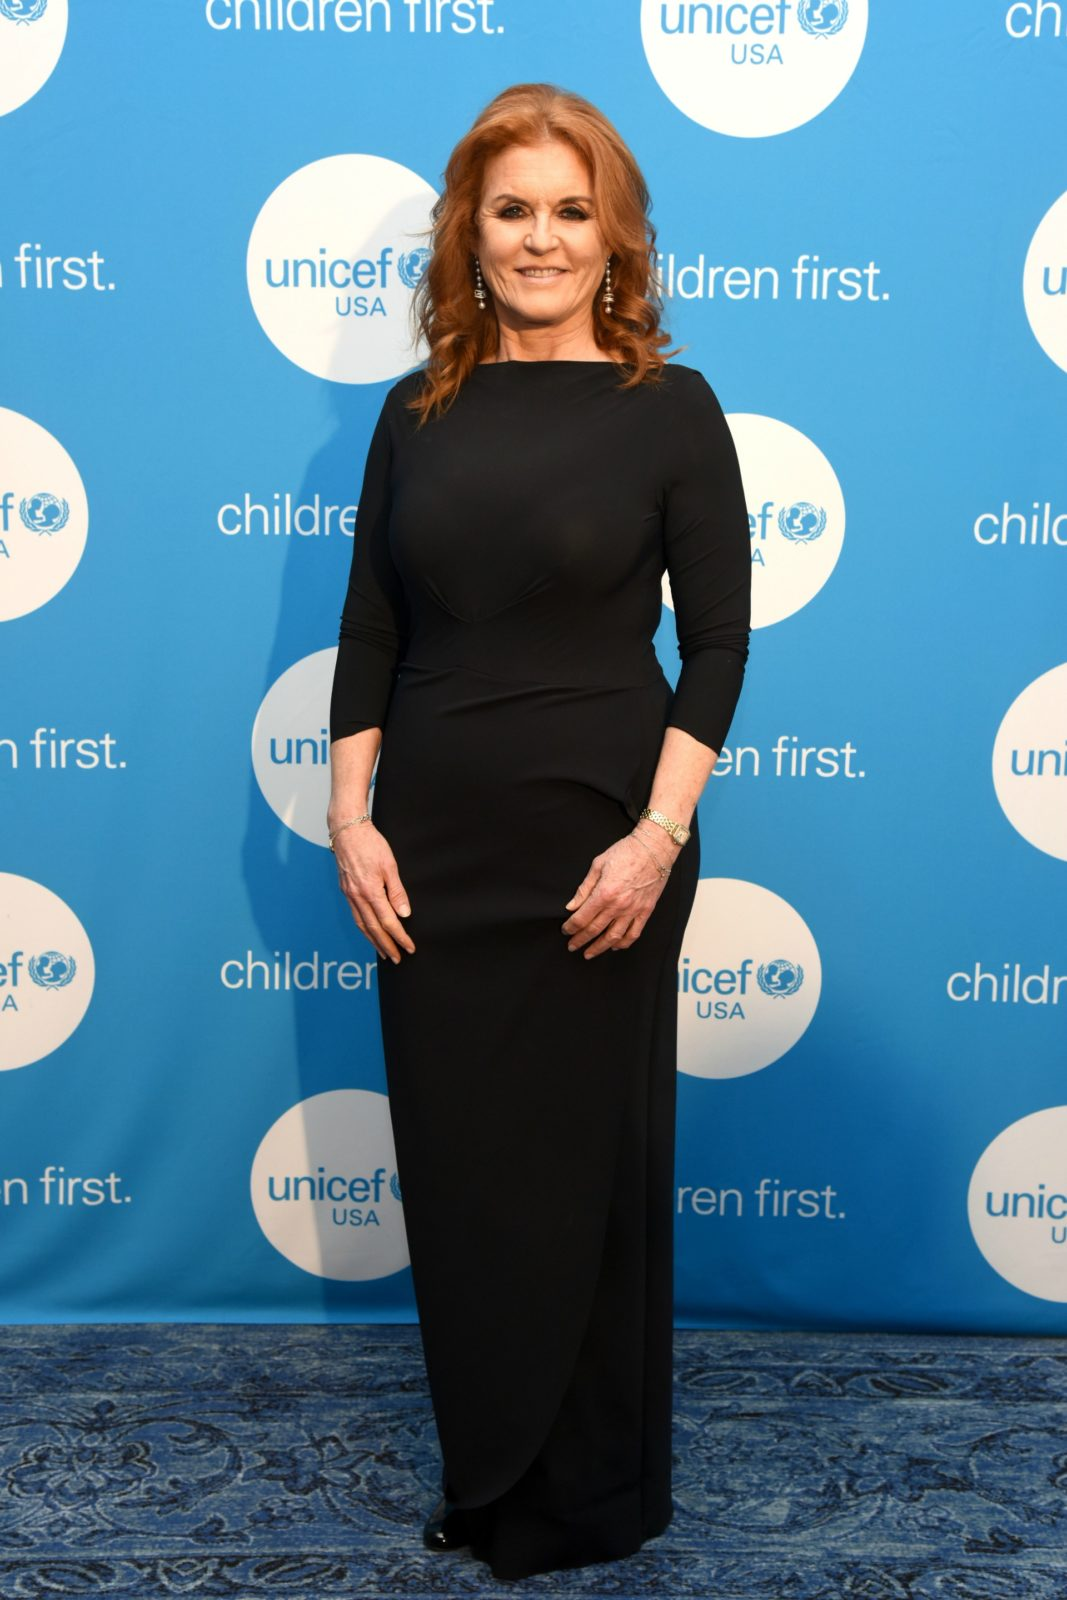 Sarah Ferguson wowed in a figure-hugging black gown as she attendedthe annual Unicef gala in Dallas, Texas on Friday. Source: Getty